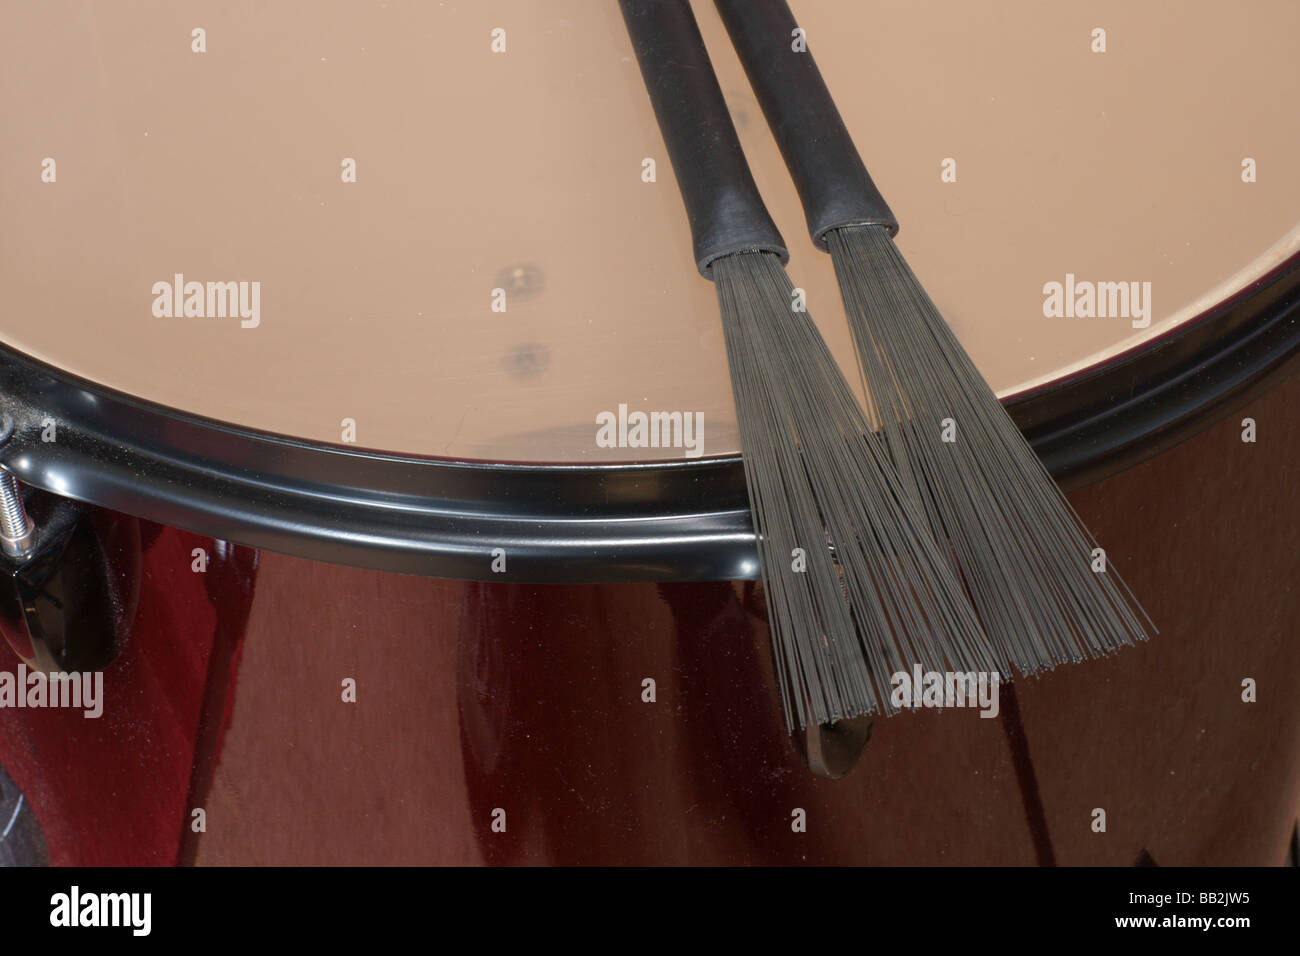 Drum with brushes - Stock Image